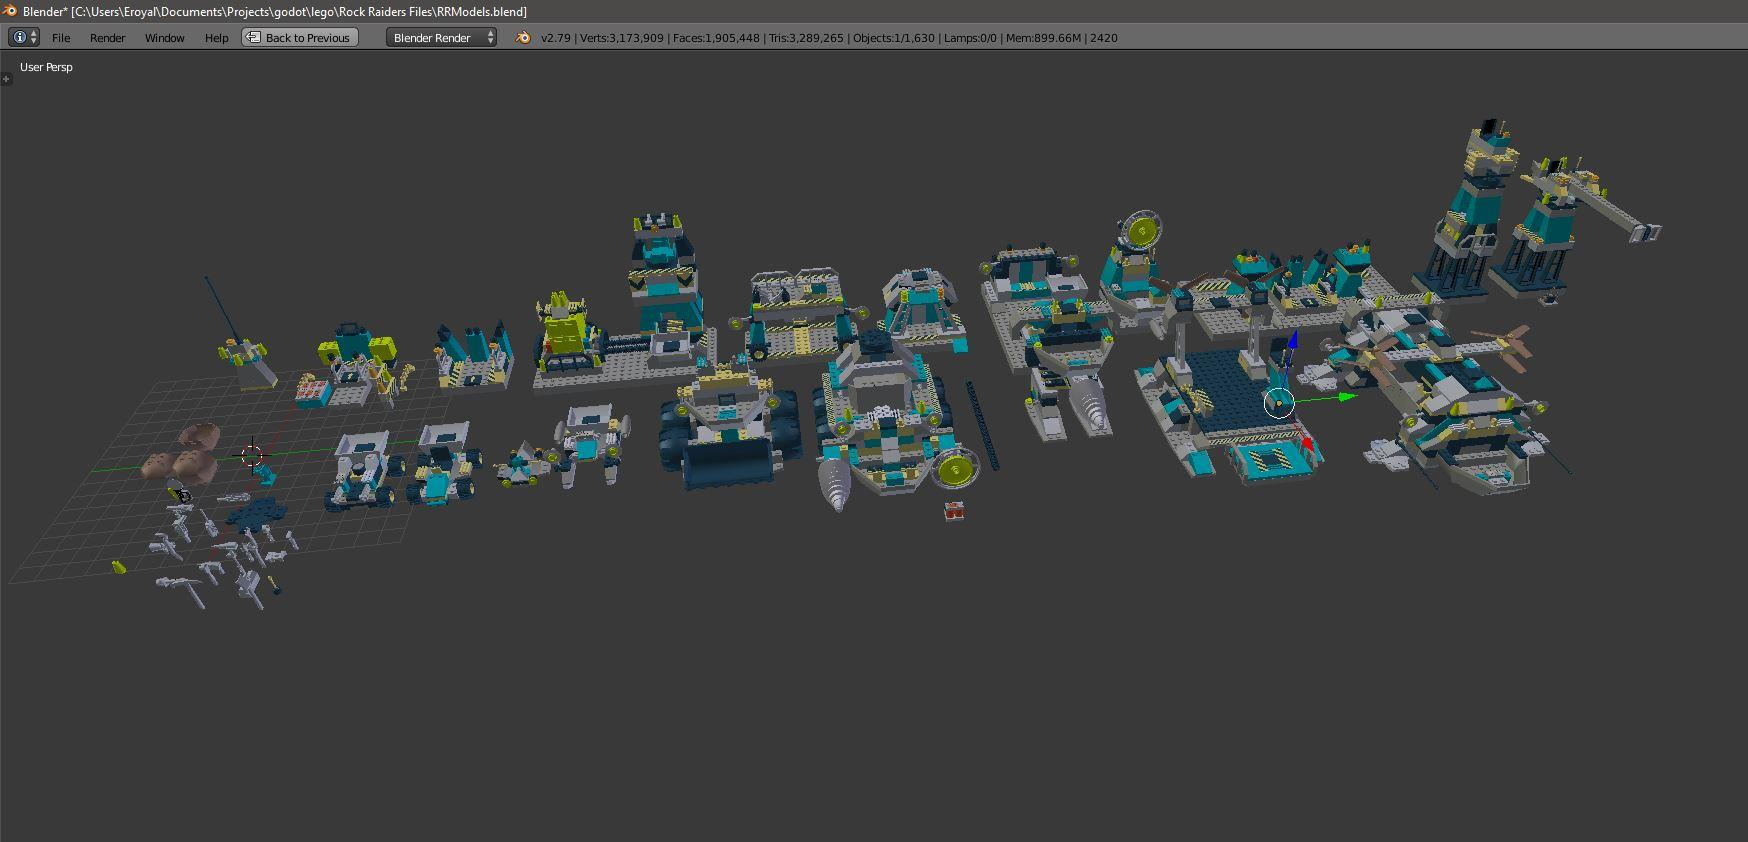 Recreating High poly LRR buildings and vehicles - MOCs